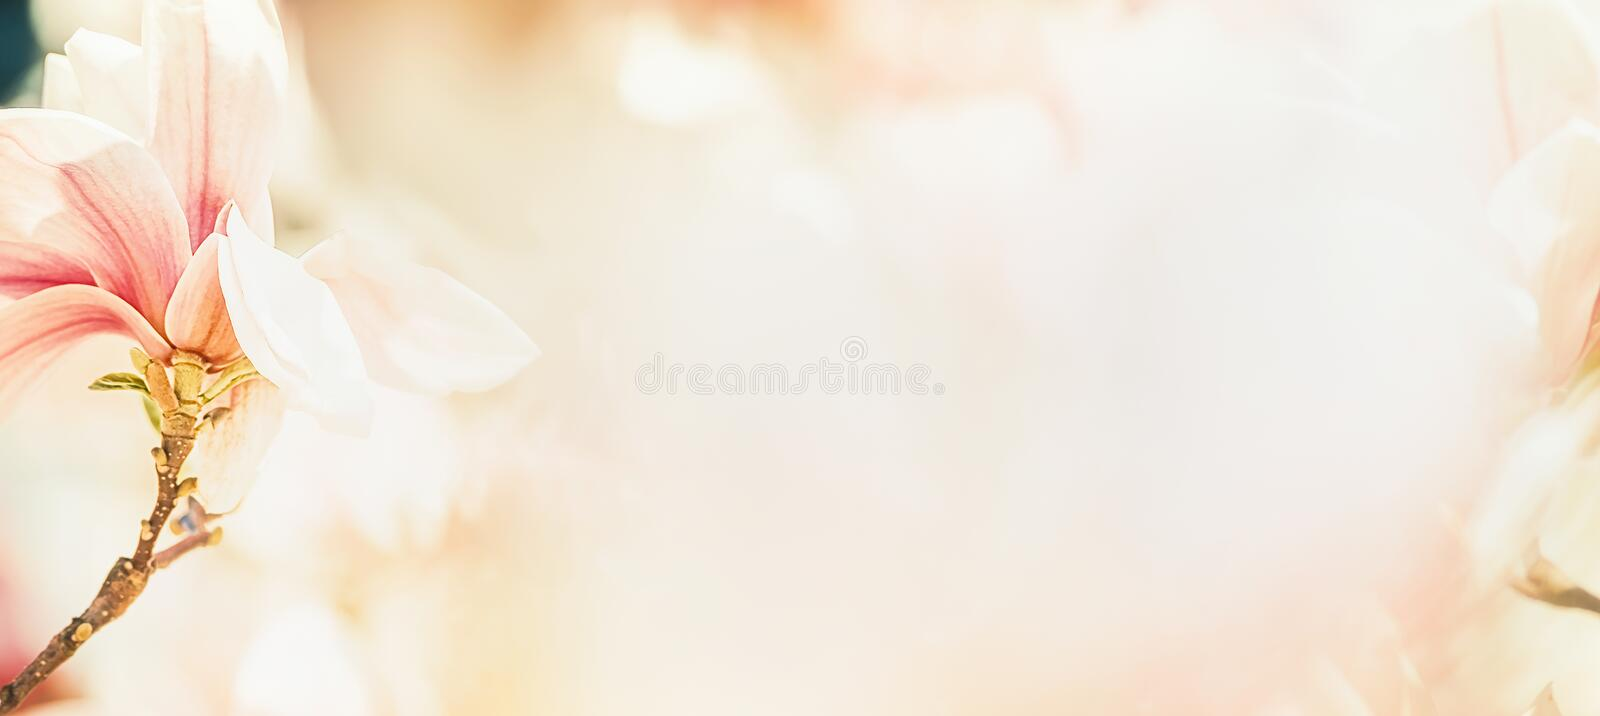 Pretty magnolia blossom in pastel color, floral banner, springtime outdoor nature in garden stock photography